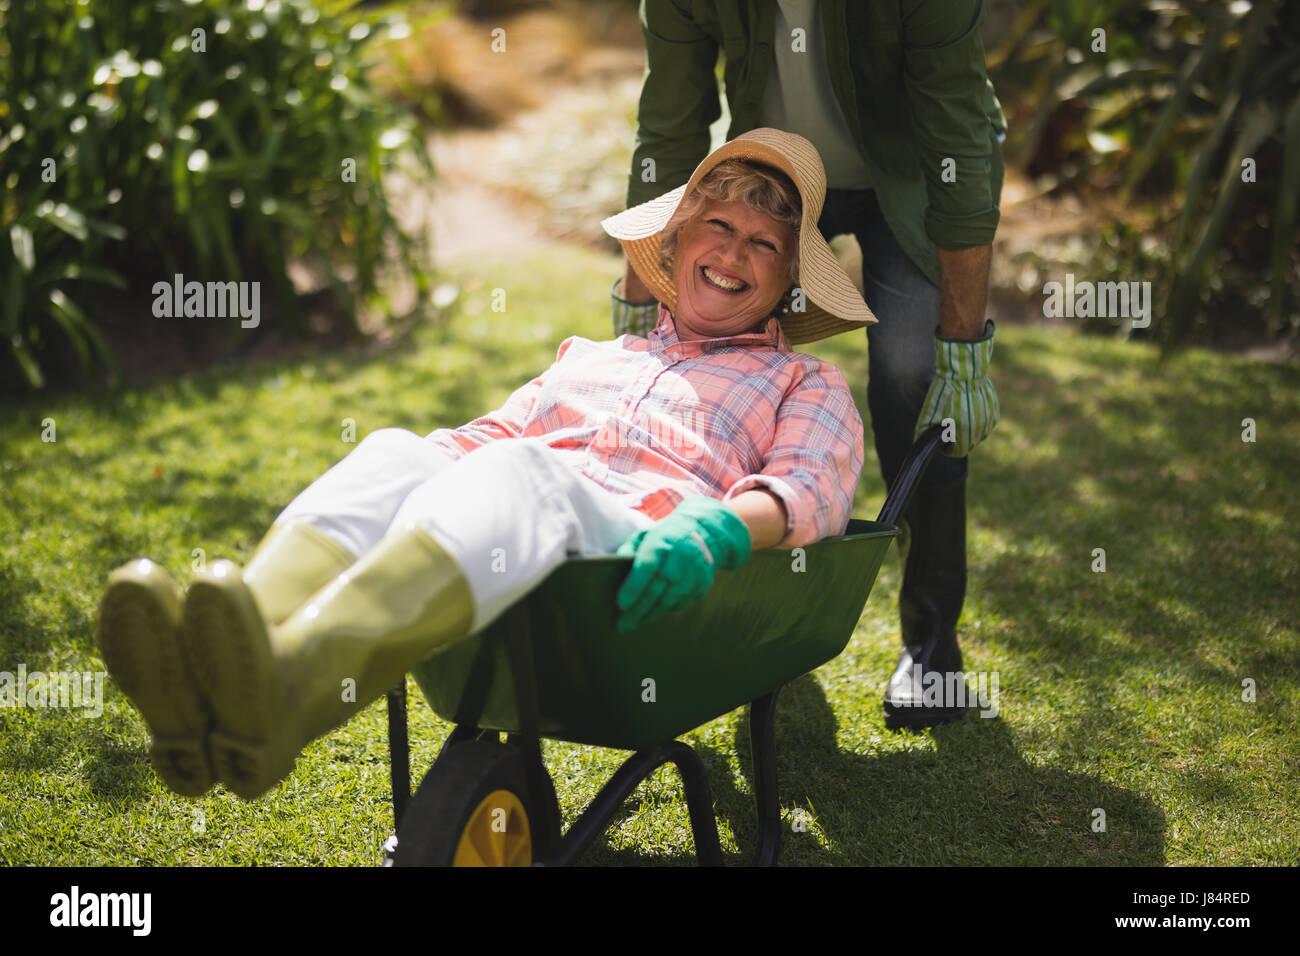 Mid section of man carrying smiling senior woman in wheel borrow at yard - Stock Image